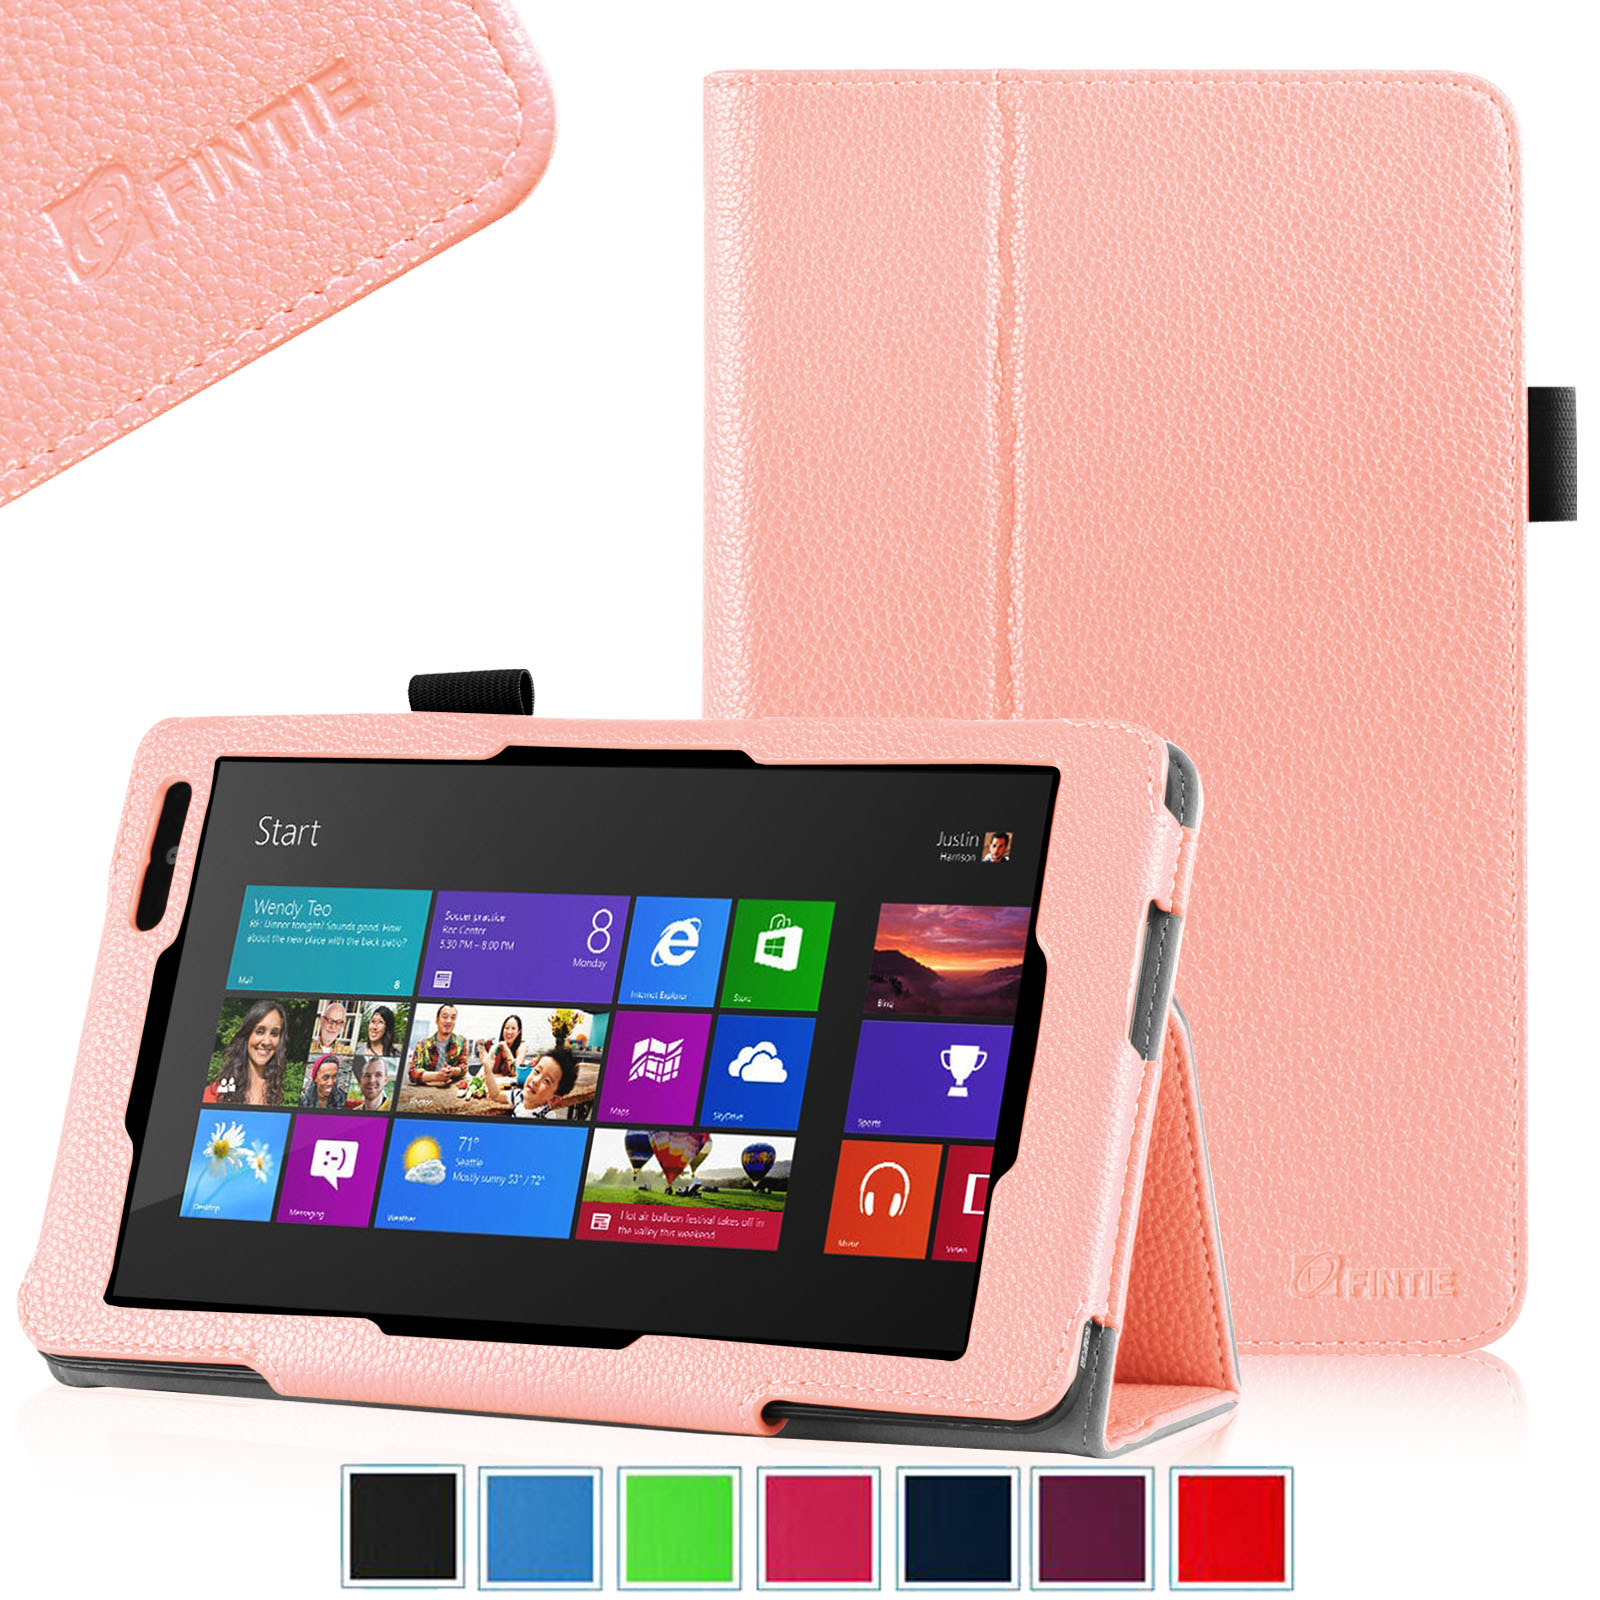 [View Upsells for Item] 	Fintie Dell Venue 8 Pro Tablet (Windows 8.1) Folio Case Slim Fit PU Leather Stand Cover, Pink